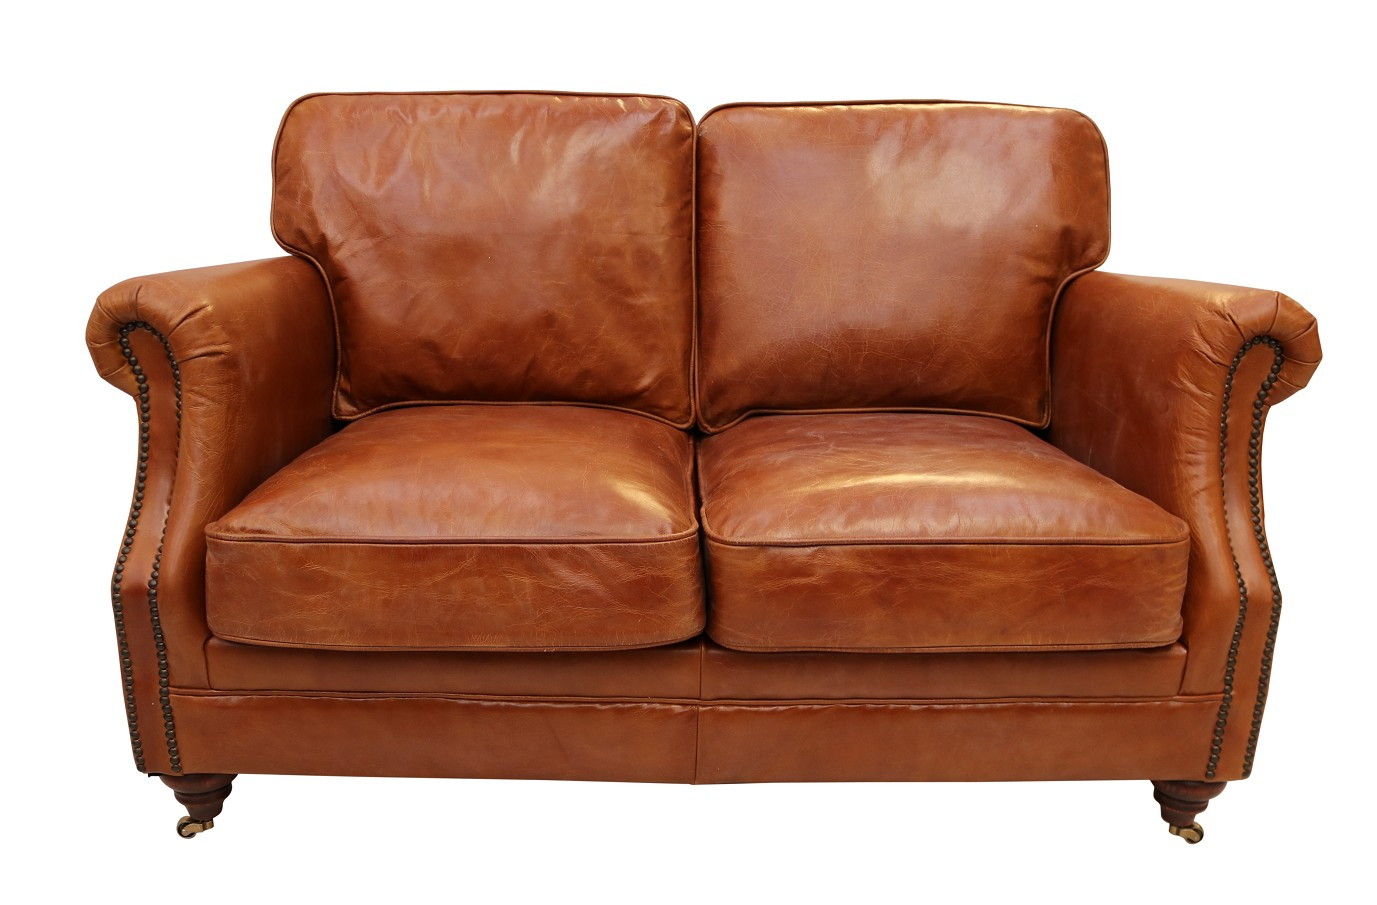 Cool Luxury Vintage Distressed Leather 2 Seater Settee Sofa Tan Dailytribune Chair Design For Home Dailytribuneorg